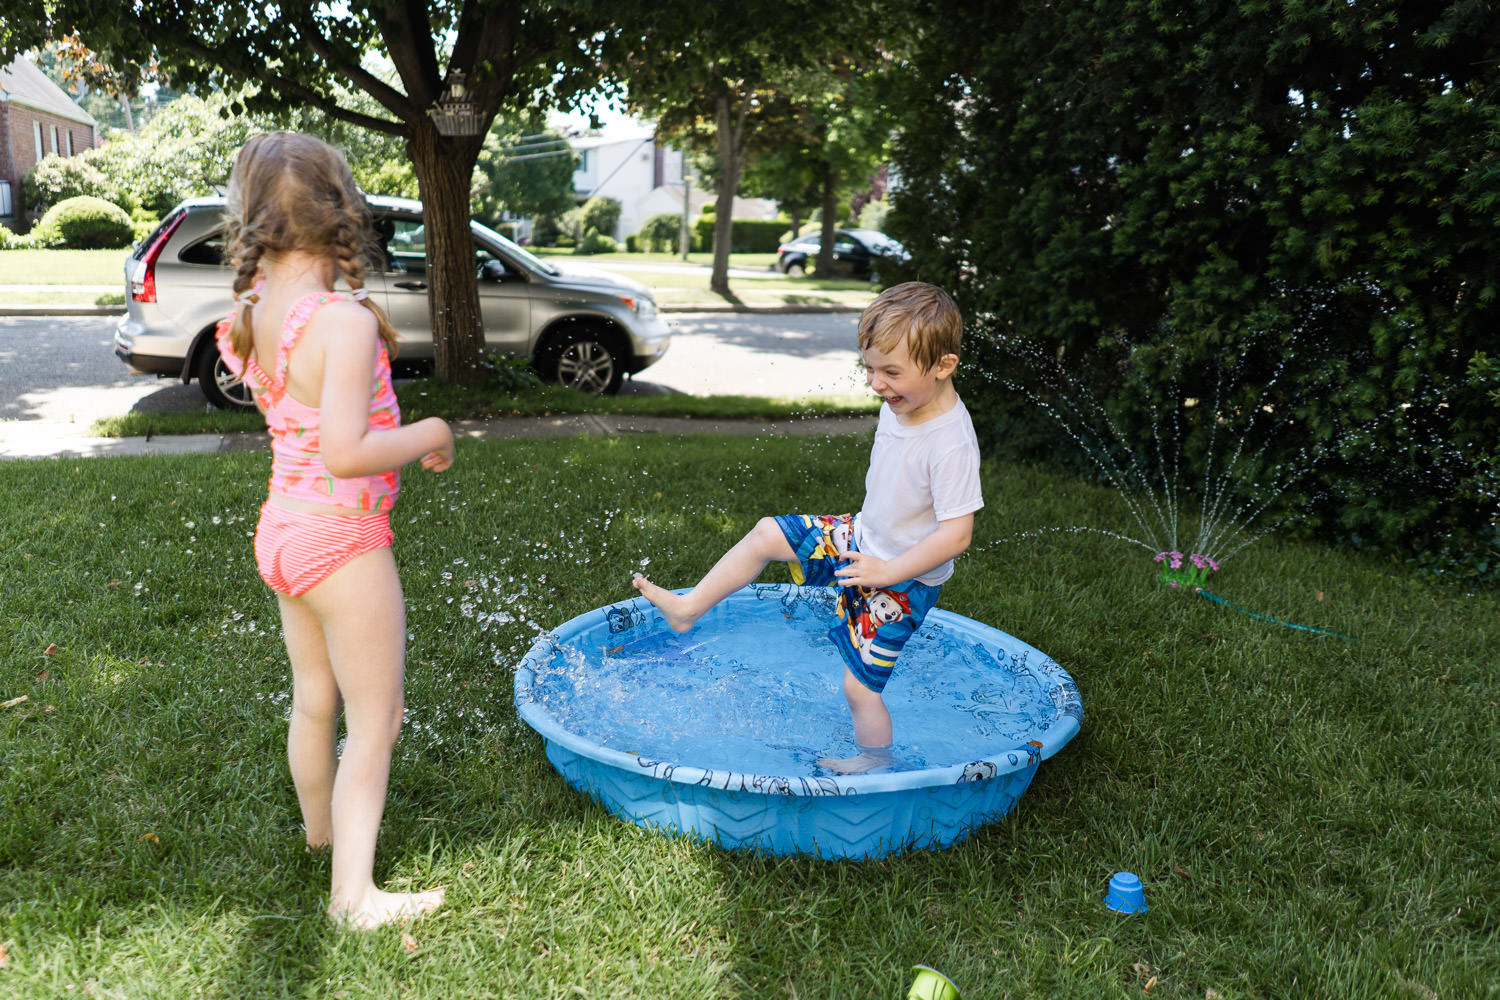 Two kids play with a kiddie pool on a lawn.